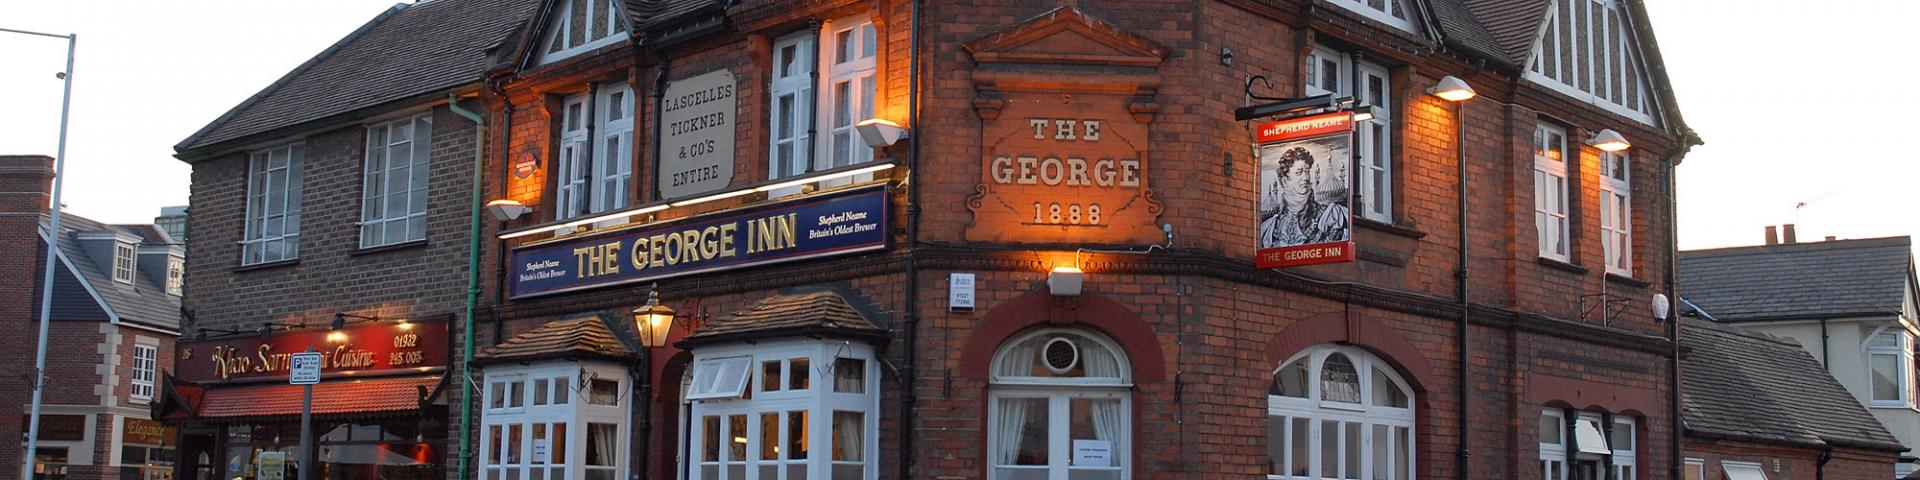 George Inn, Walton-on-Thames